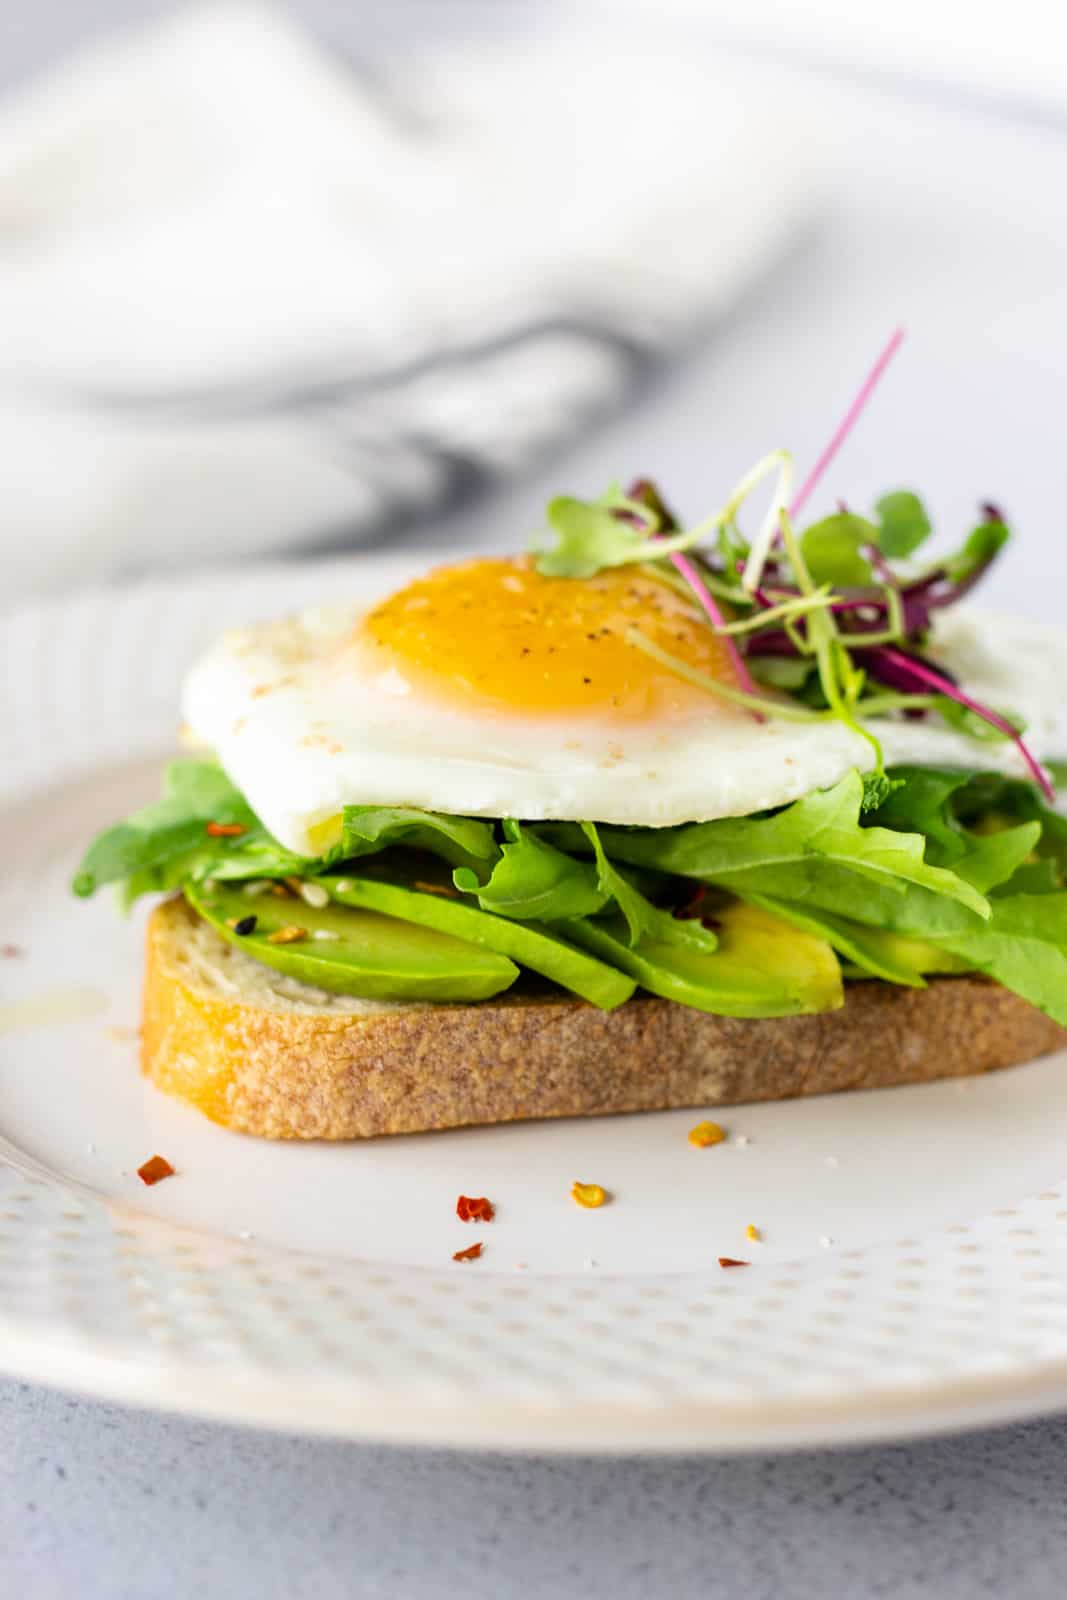 Avocado toast topped with a sunny side up egg and micro greens.